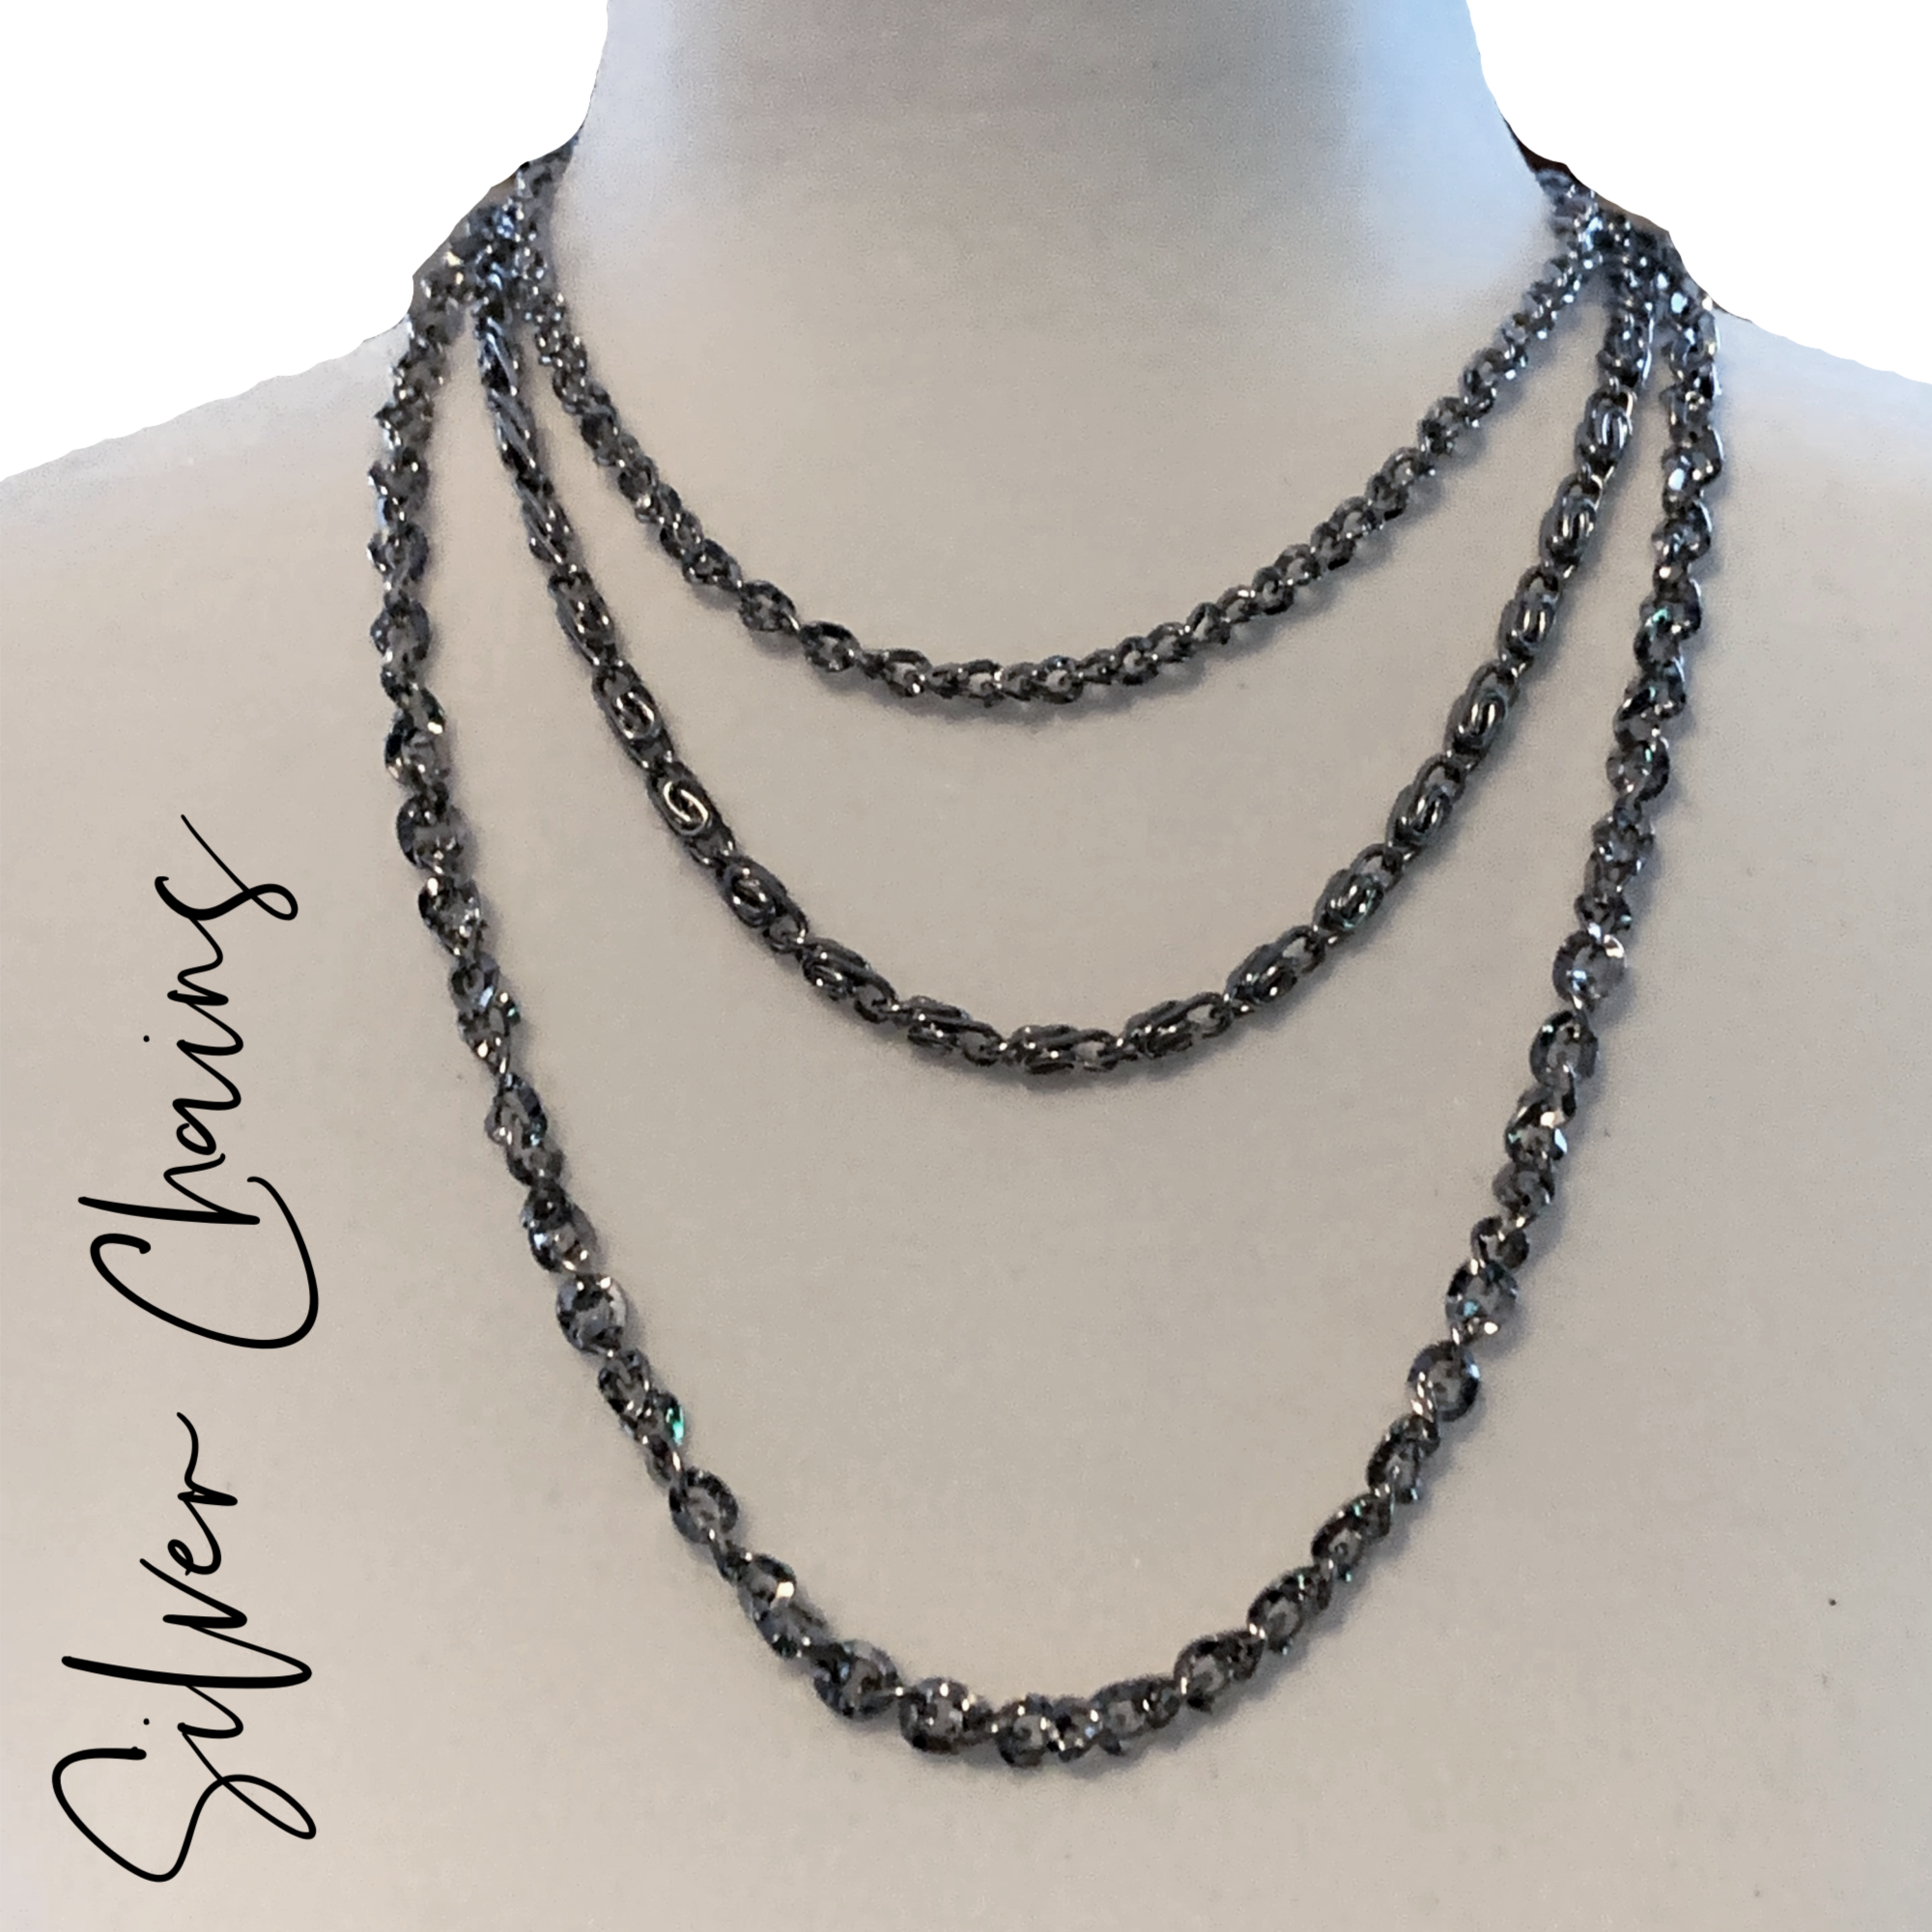 Vintage 3 Layer Silver Chain Necklace Ebay Silver Chain Necklace Silver Chain Chain Necklace